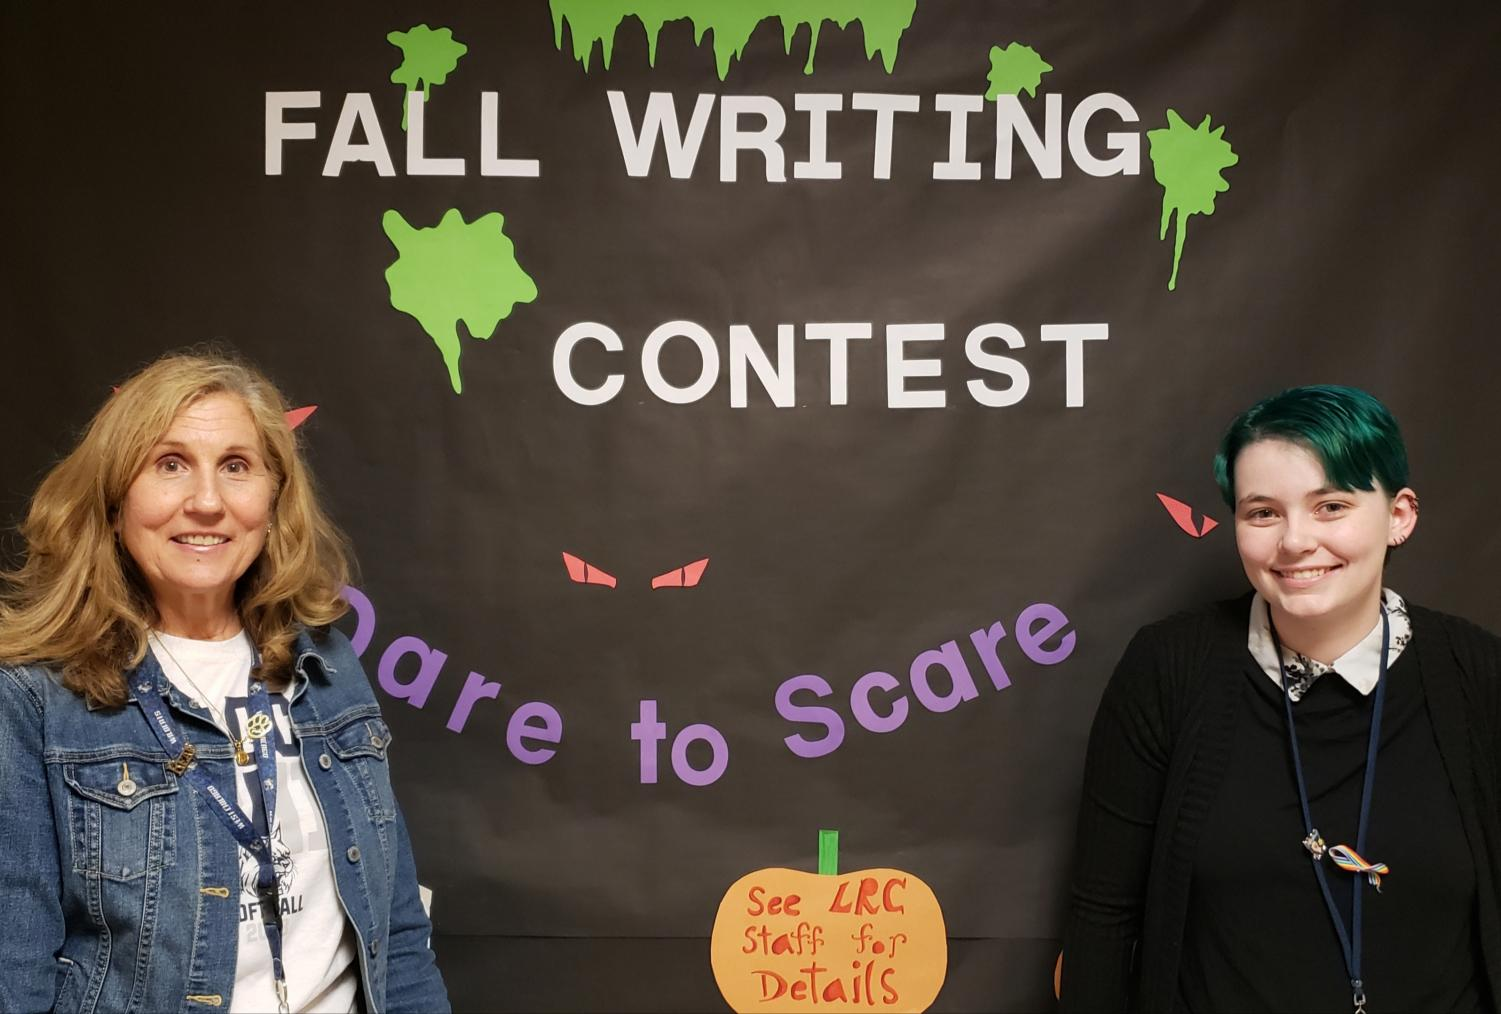 Library media specialist Donna Leahy (left) presents Dare to Scare on Oct. 24. LRC clerk Donna Kubica designed the poster.